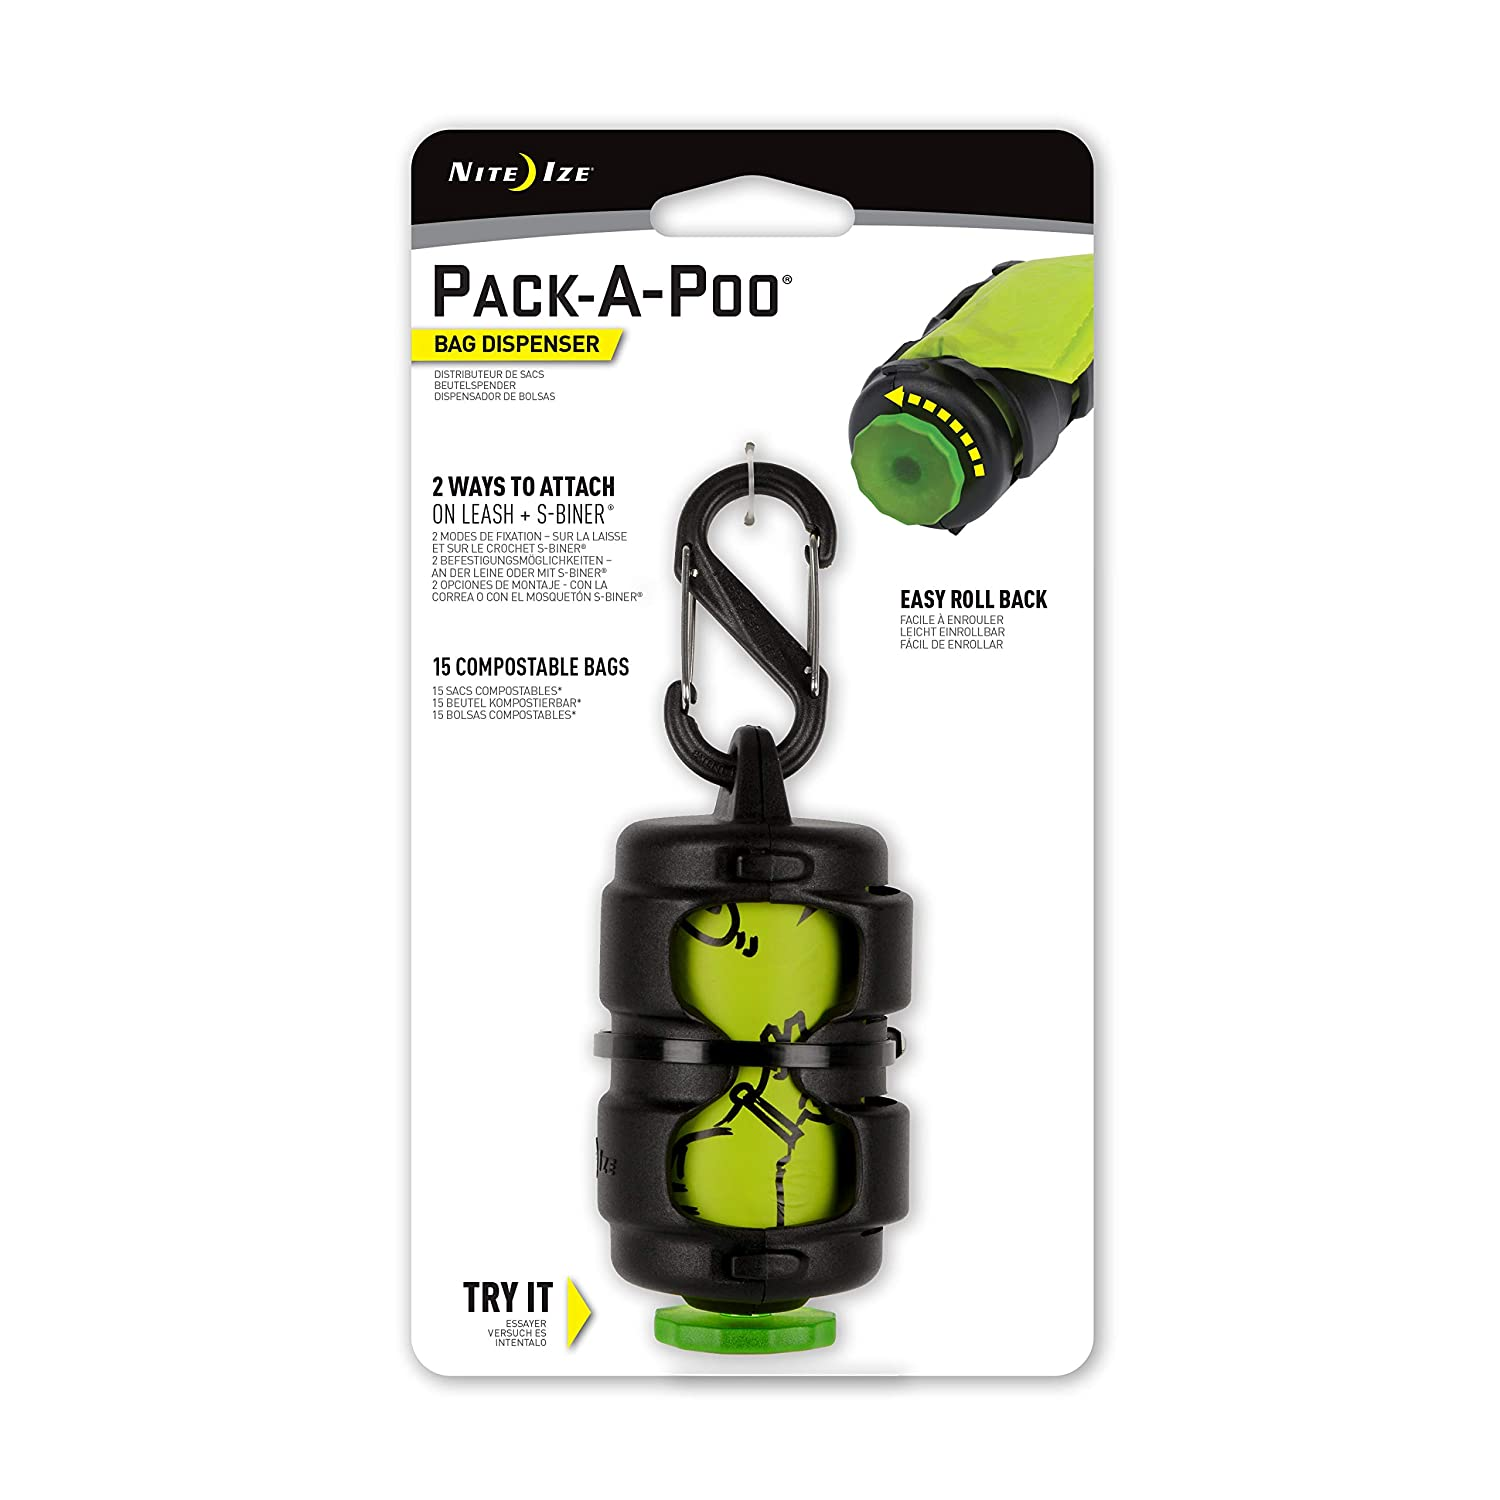 Nite Ize Pack-A-Poo Bag Dispenser